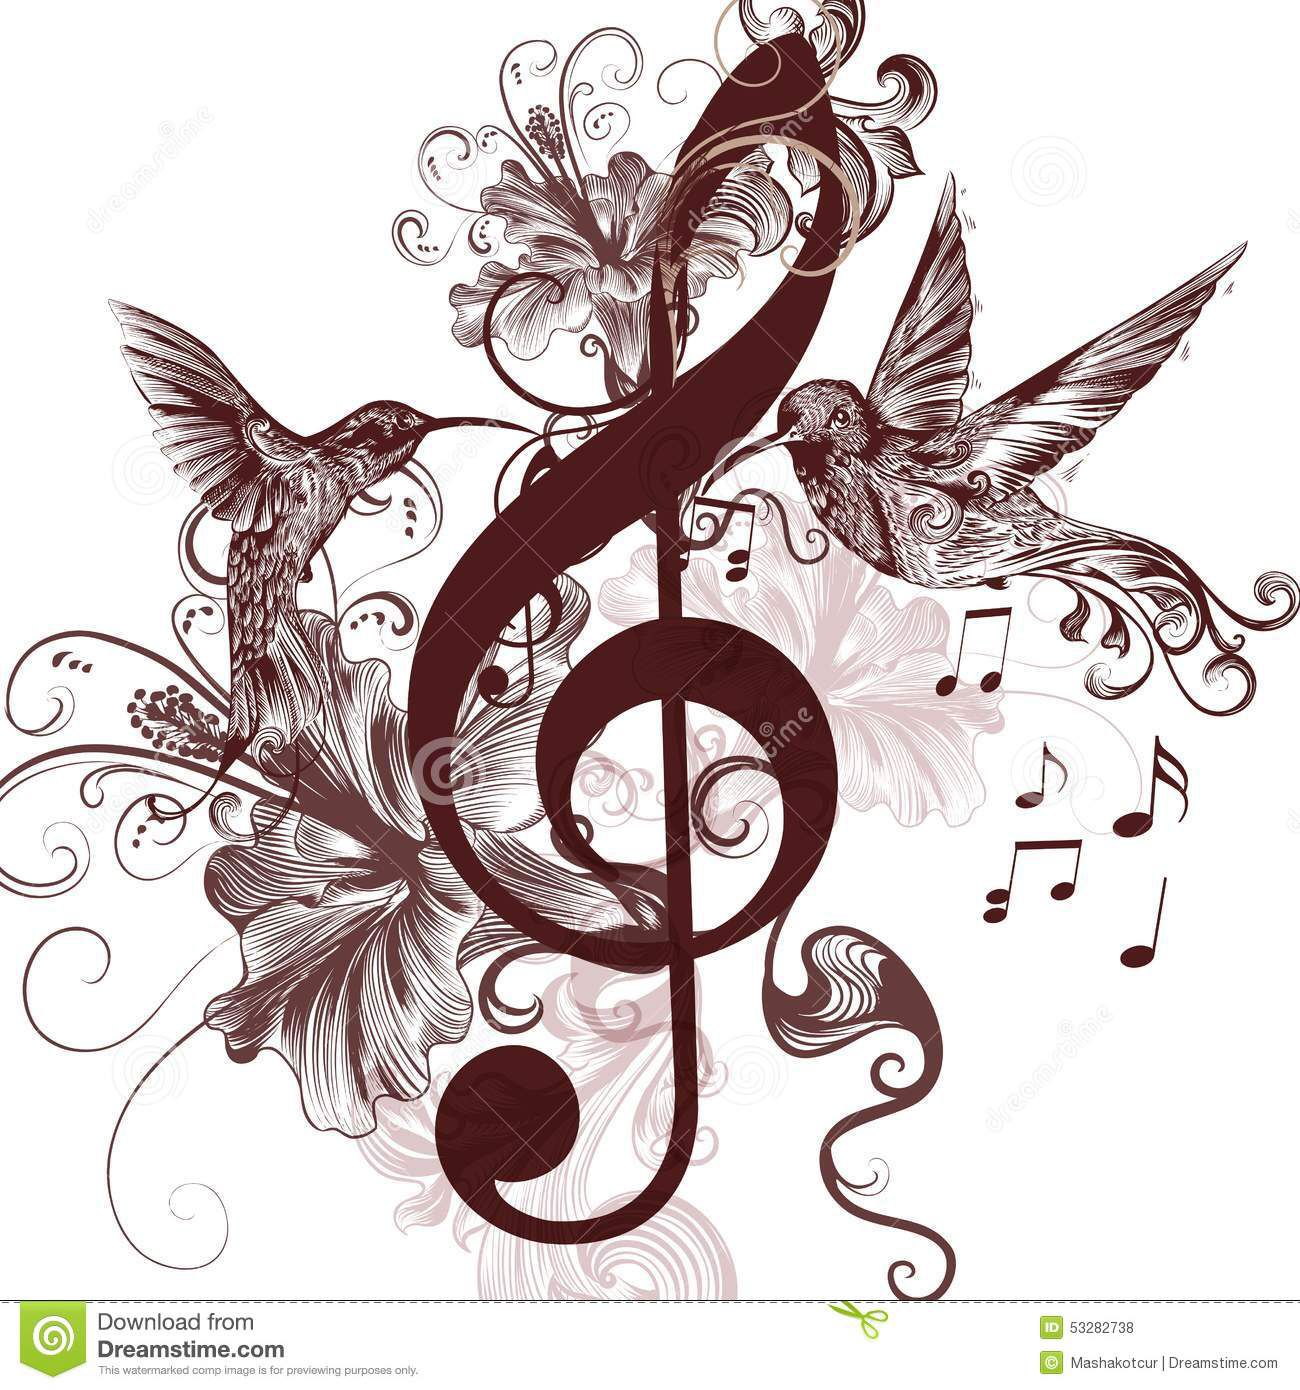 Take out the music symbols and move hummingbird closer